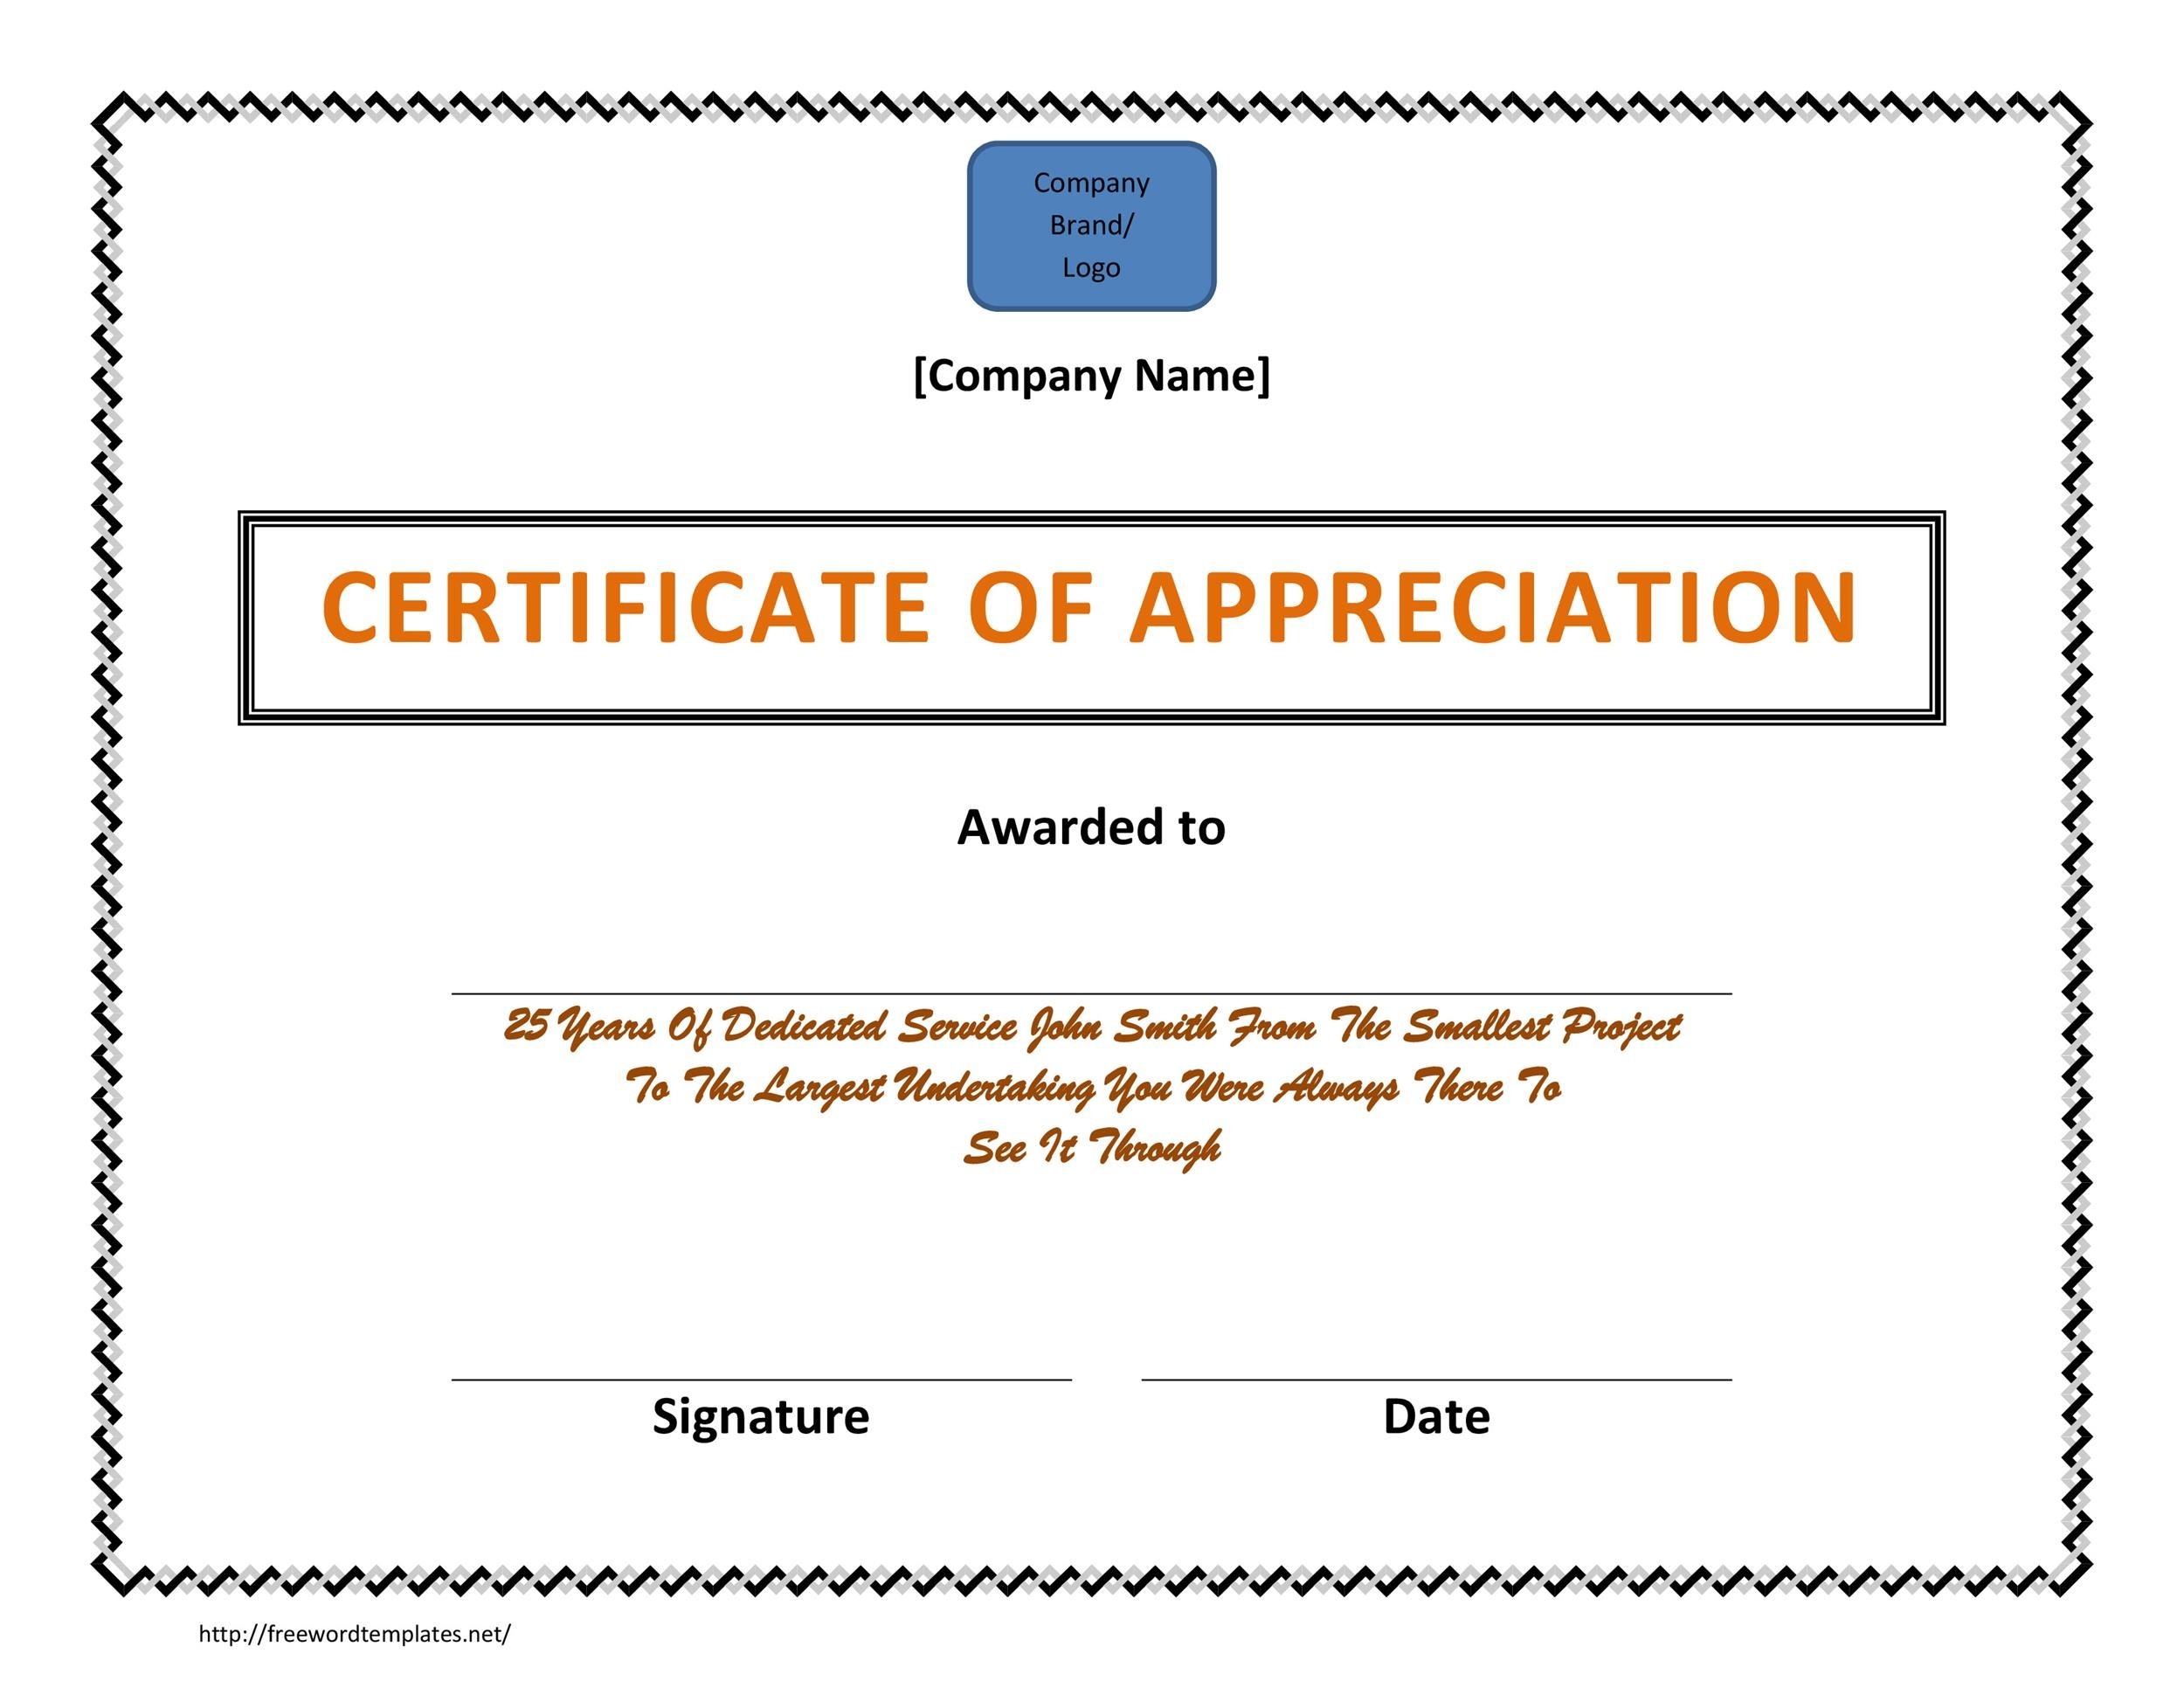 Free certificate of appreciation templates and letters printable certificate of appreciation 05 yelopaper Image collections